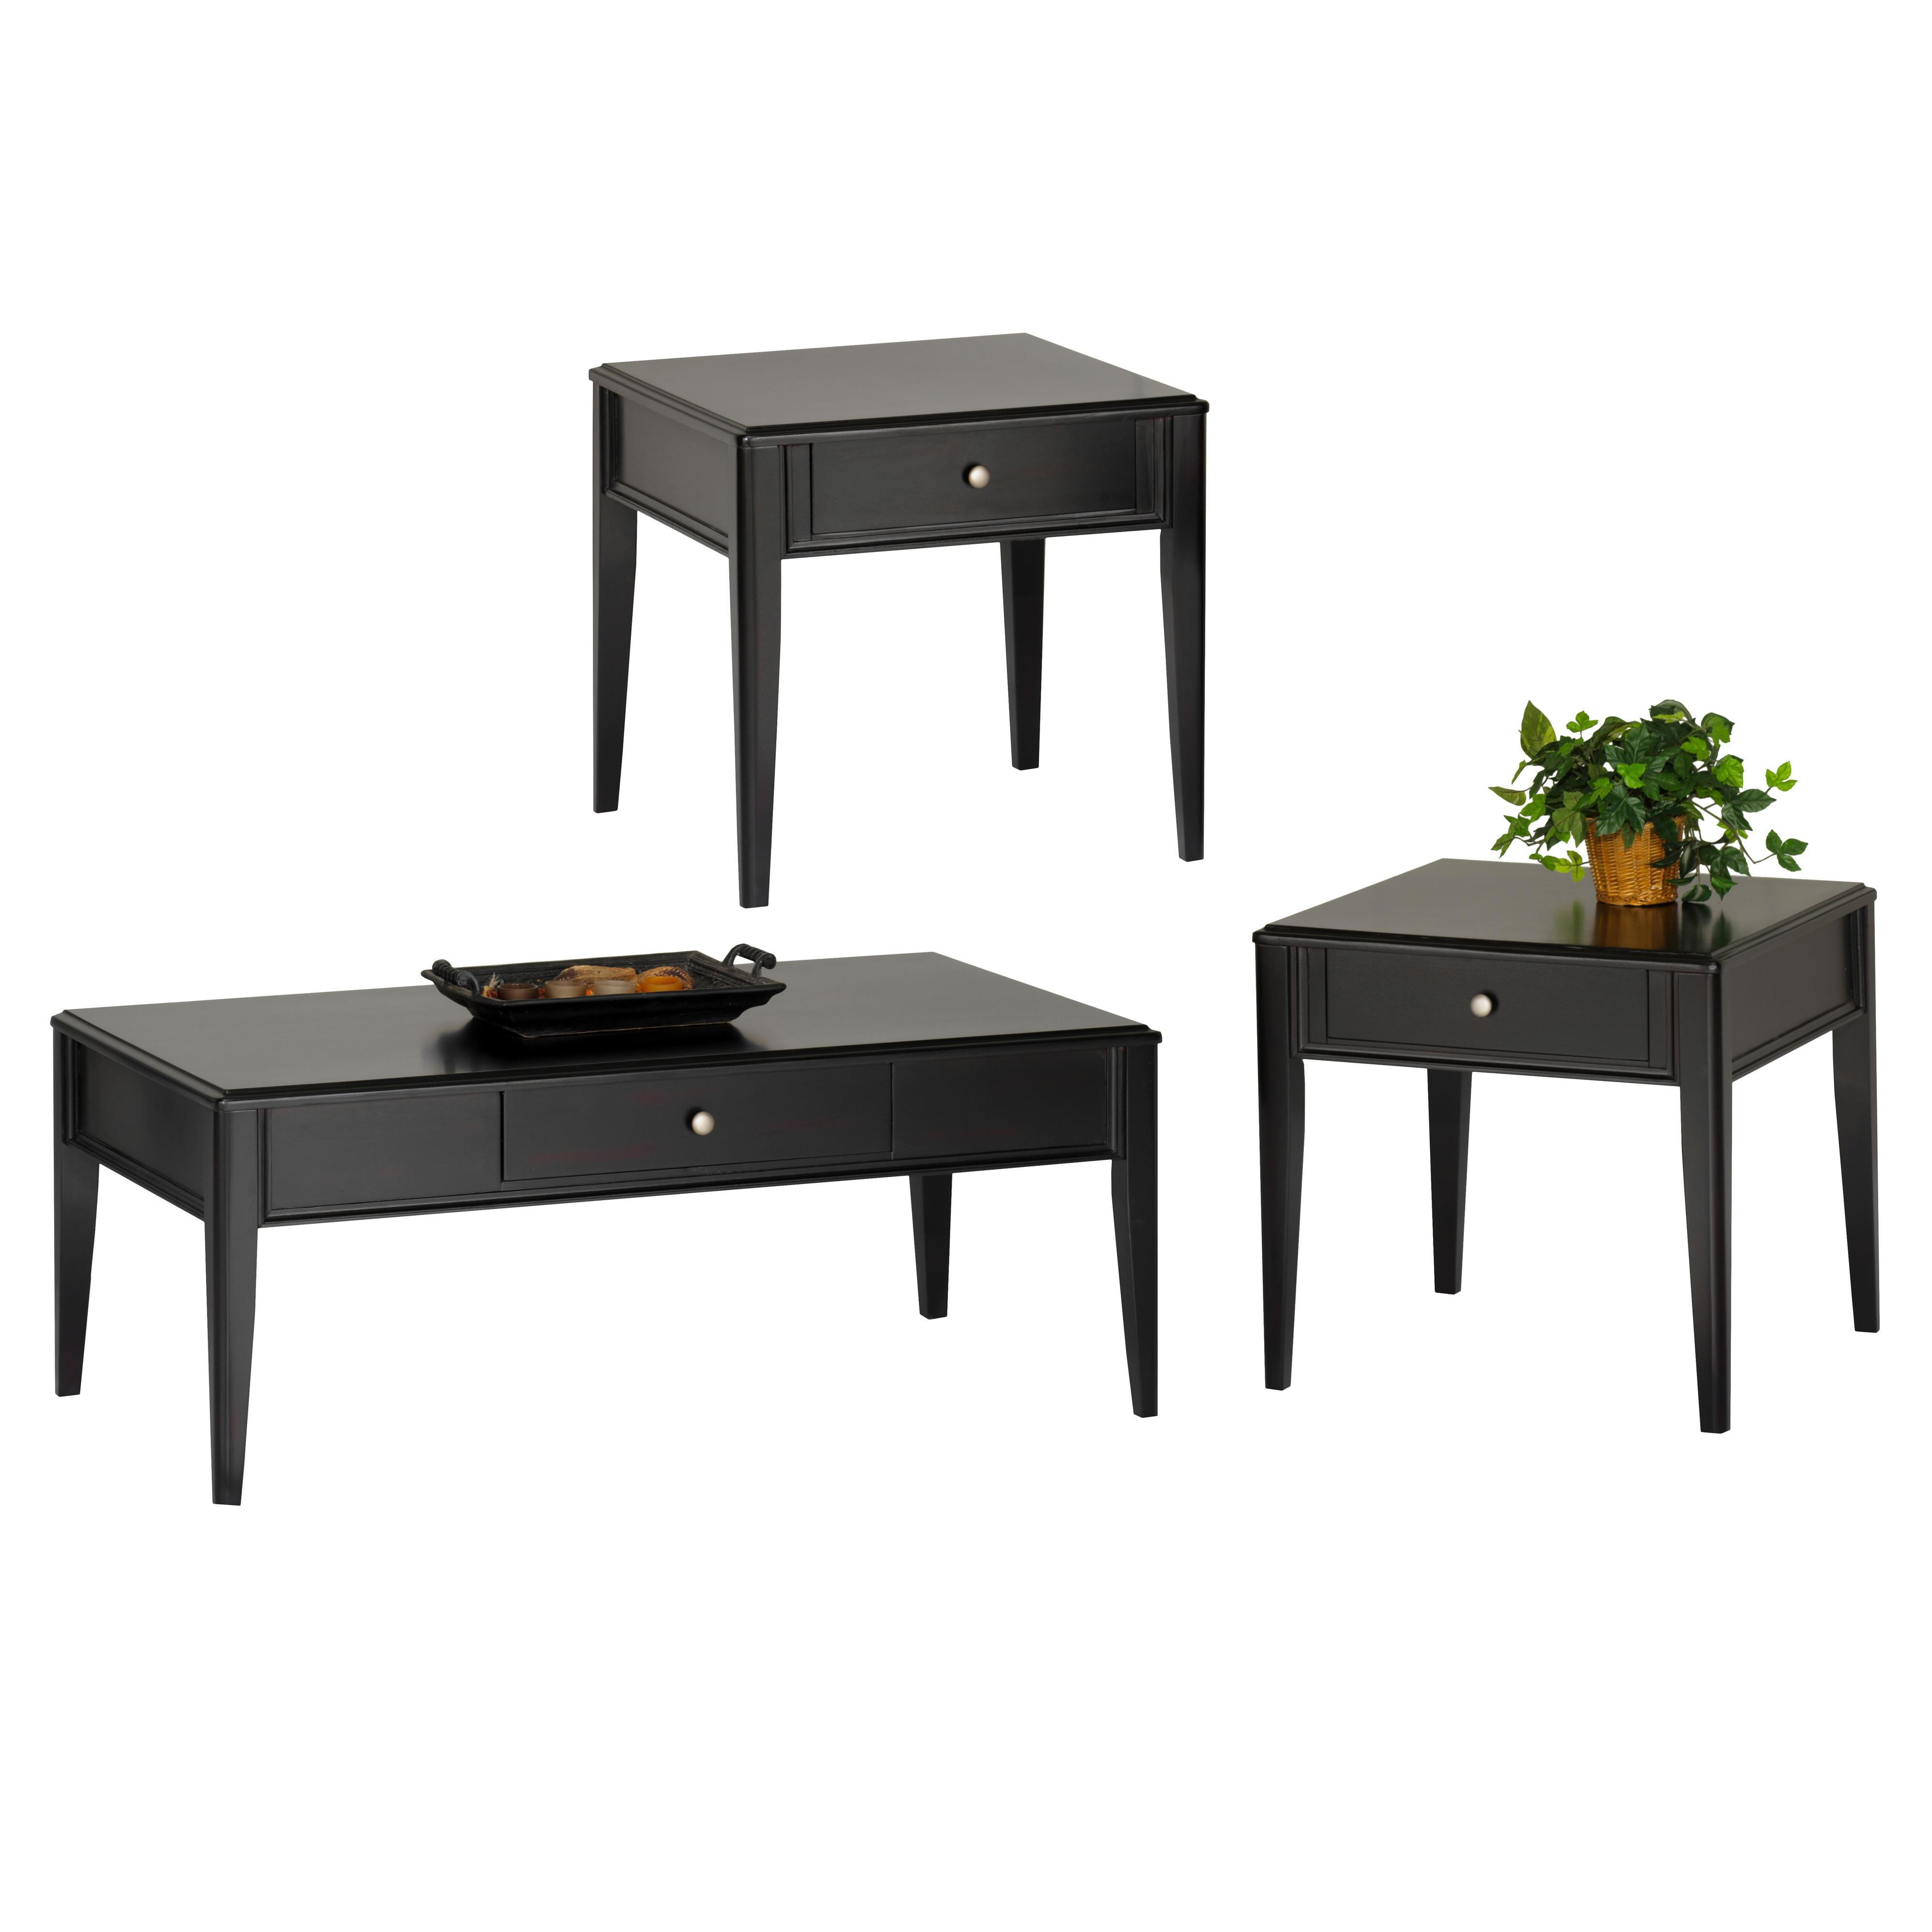 New classic east shore 3 pack occasional table group with for Accent furnitureable